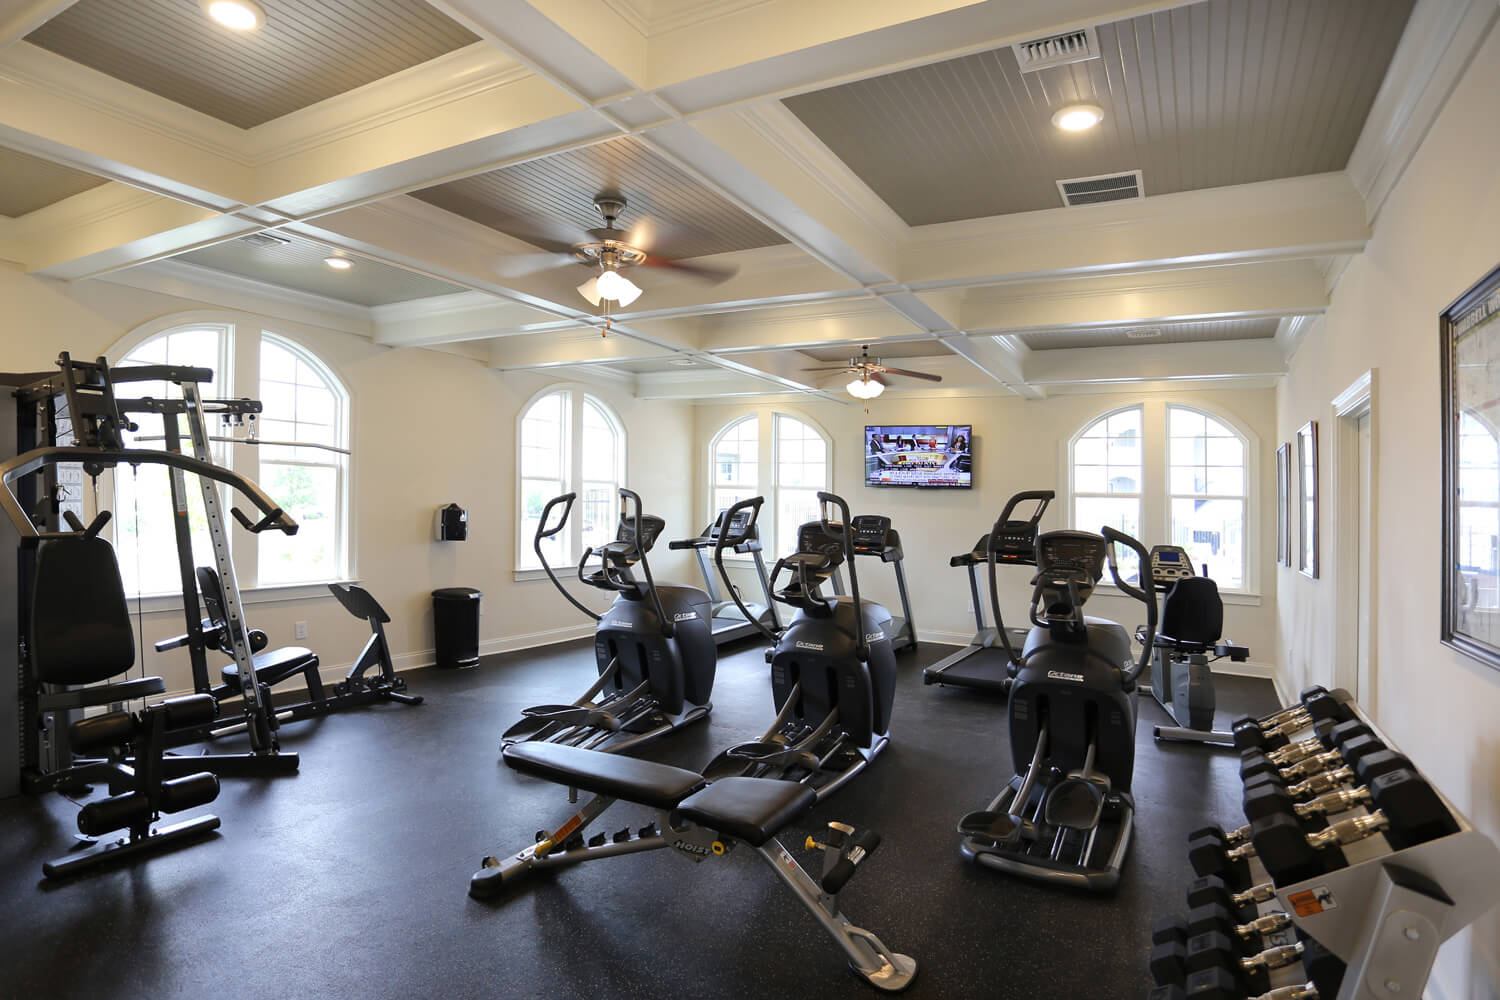 The Morgan Apartments Clubhouse Designed by Foshee Architecture - Fitness Center Room